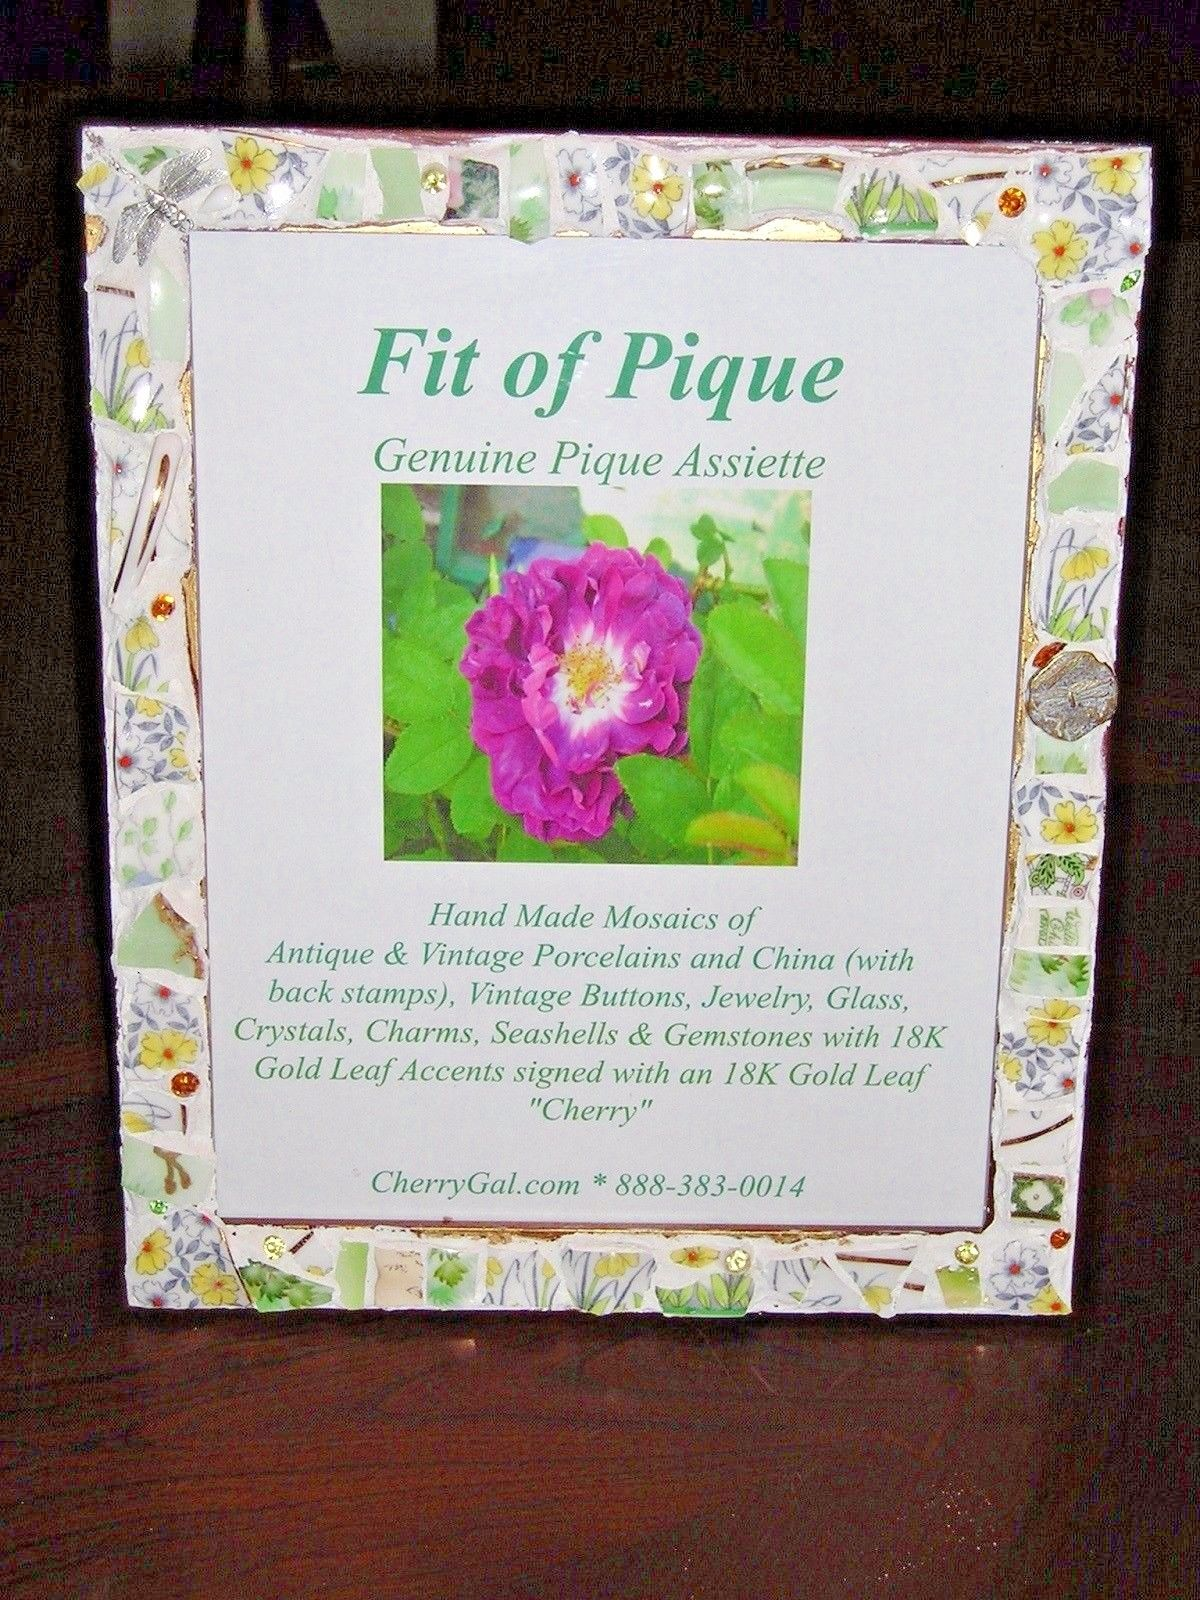 Fit Of Pique Yellow Floral Dragonflies Genuine Pique Assiette Photo Frame 8 x 10